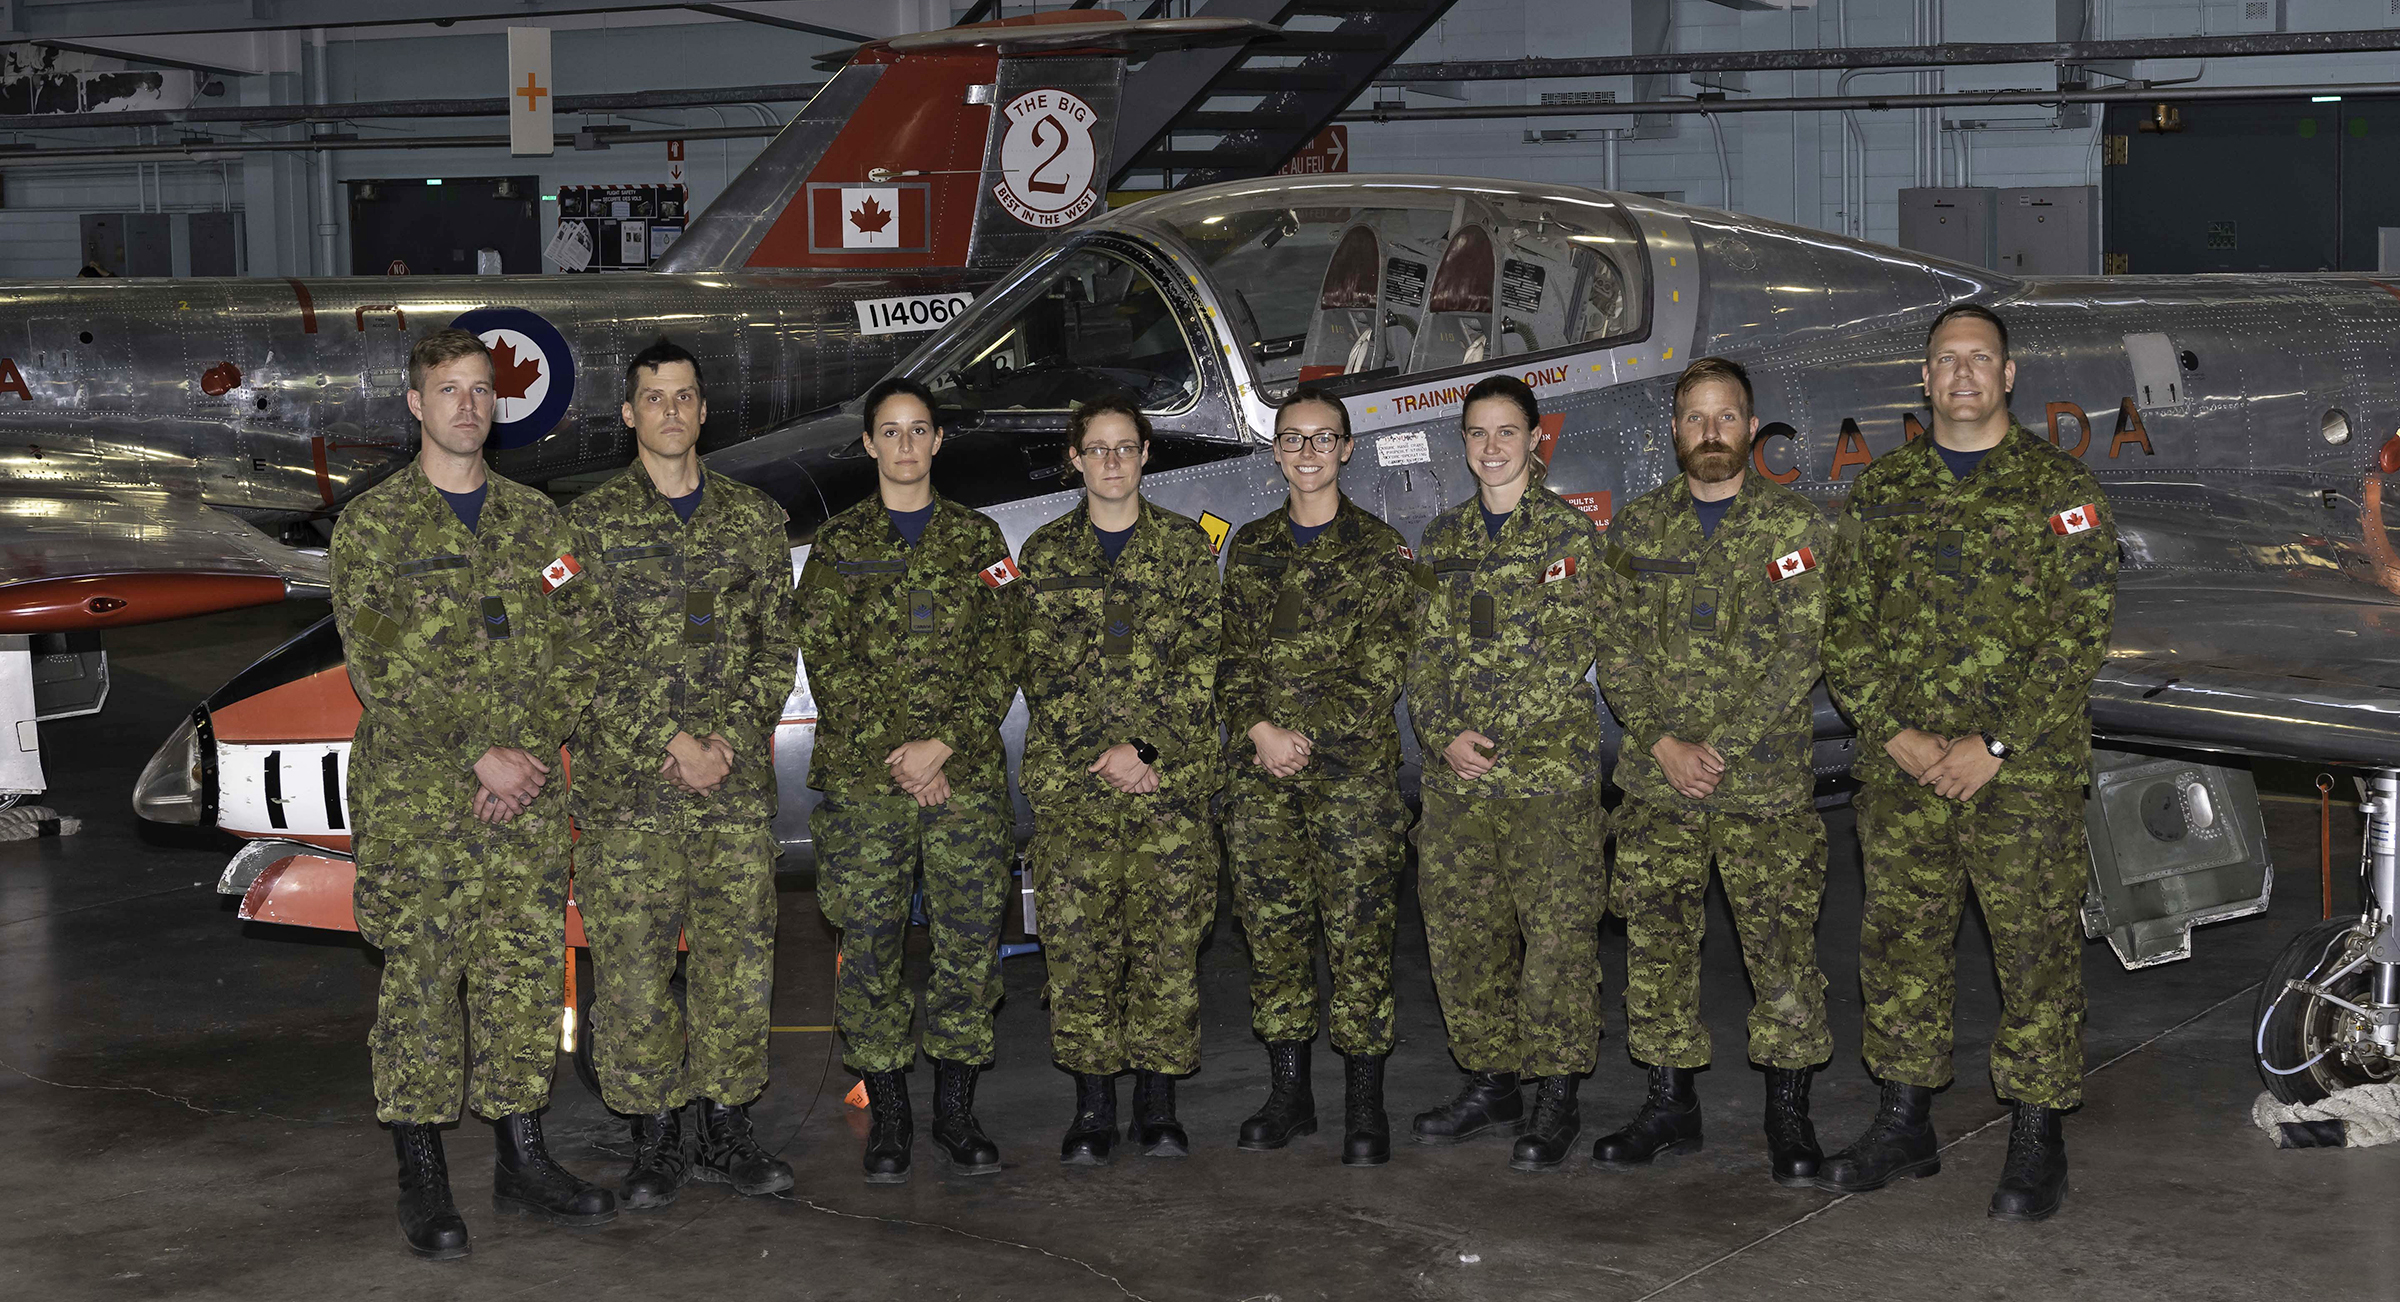 Eight people wearing disruptive pattern military uniforms stand in a row in front of a small aircraft inside a hangar.